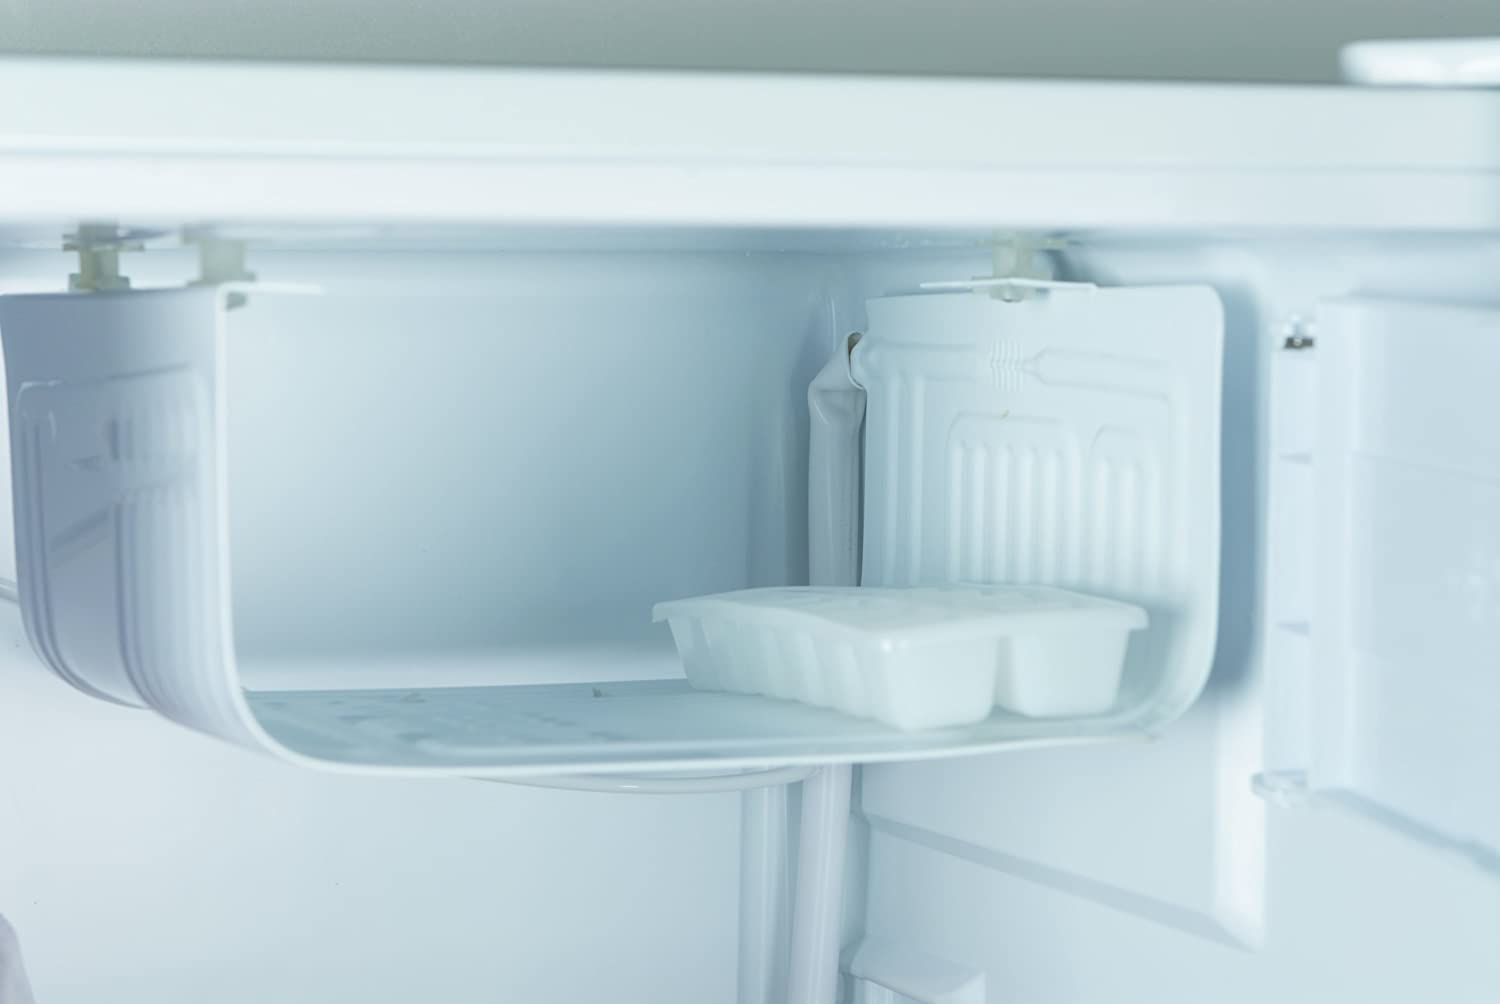 haier fridge parts. Amazon.com: Haier HC27SF22RW 2.7 Cubic Feet Refrigerator/Freezer, White: Appliances Fridge Parts